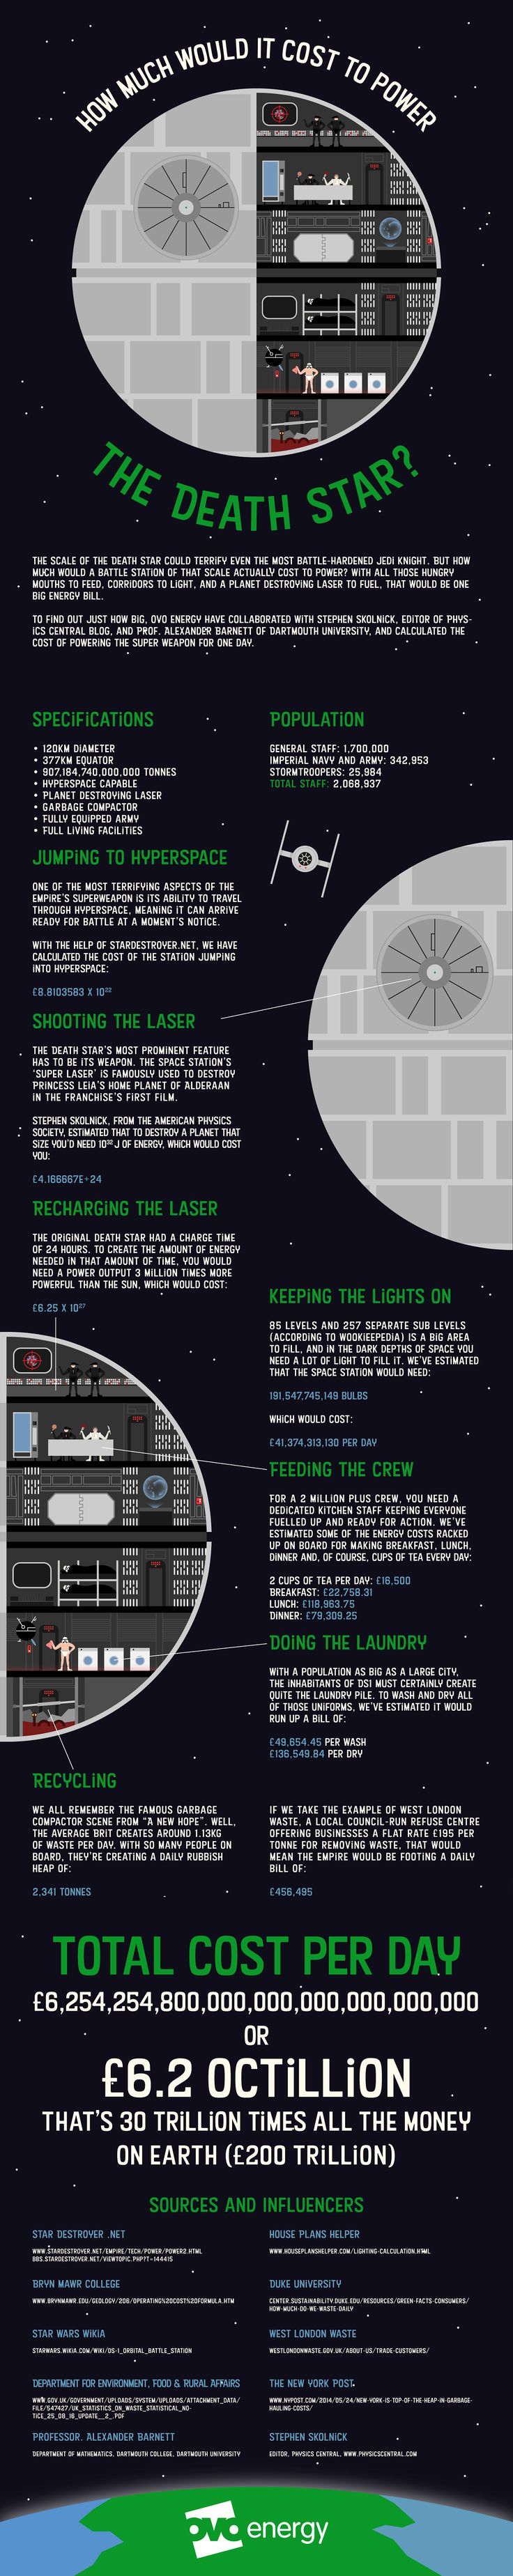 How Much Would It Cost To Power The Death Star? #Infographic #Energy